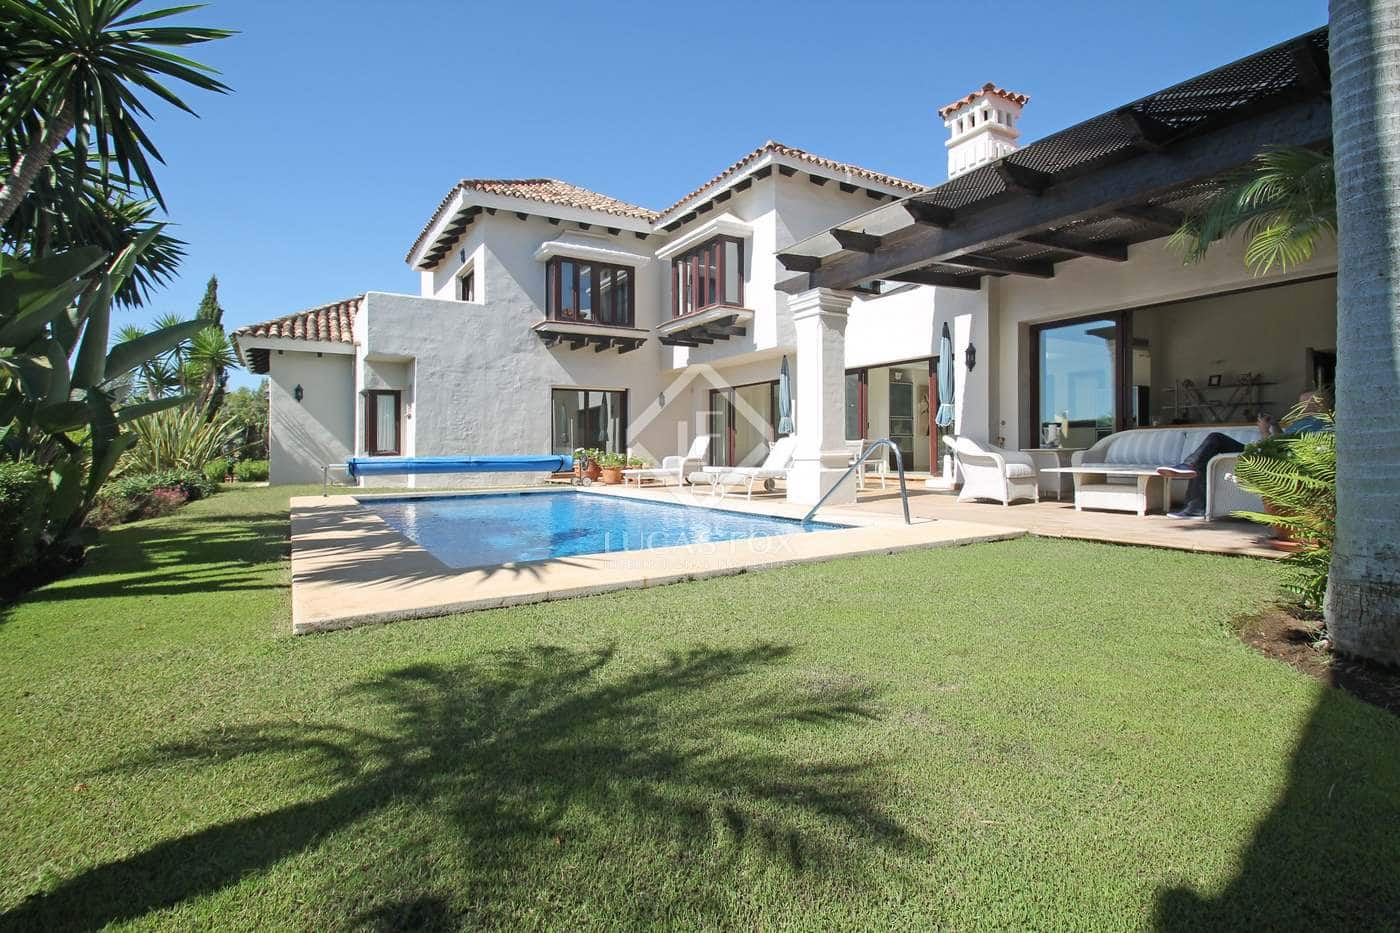 4 bedroom Villa for sale in Marbella with pool garage - € 2,100,000 (Ref: 4688713)